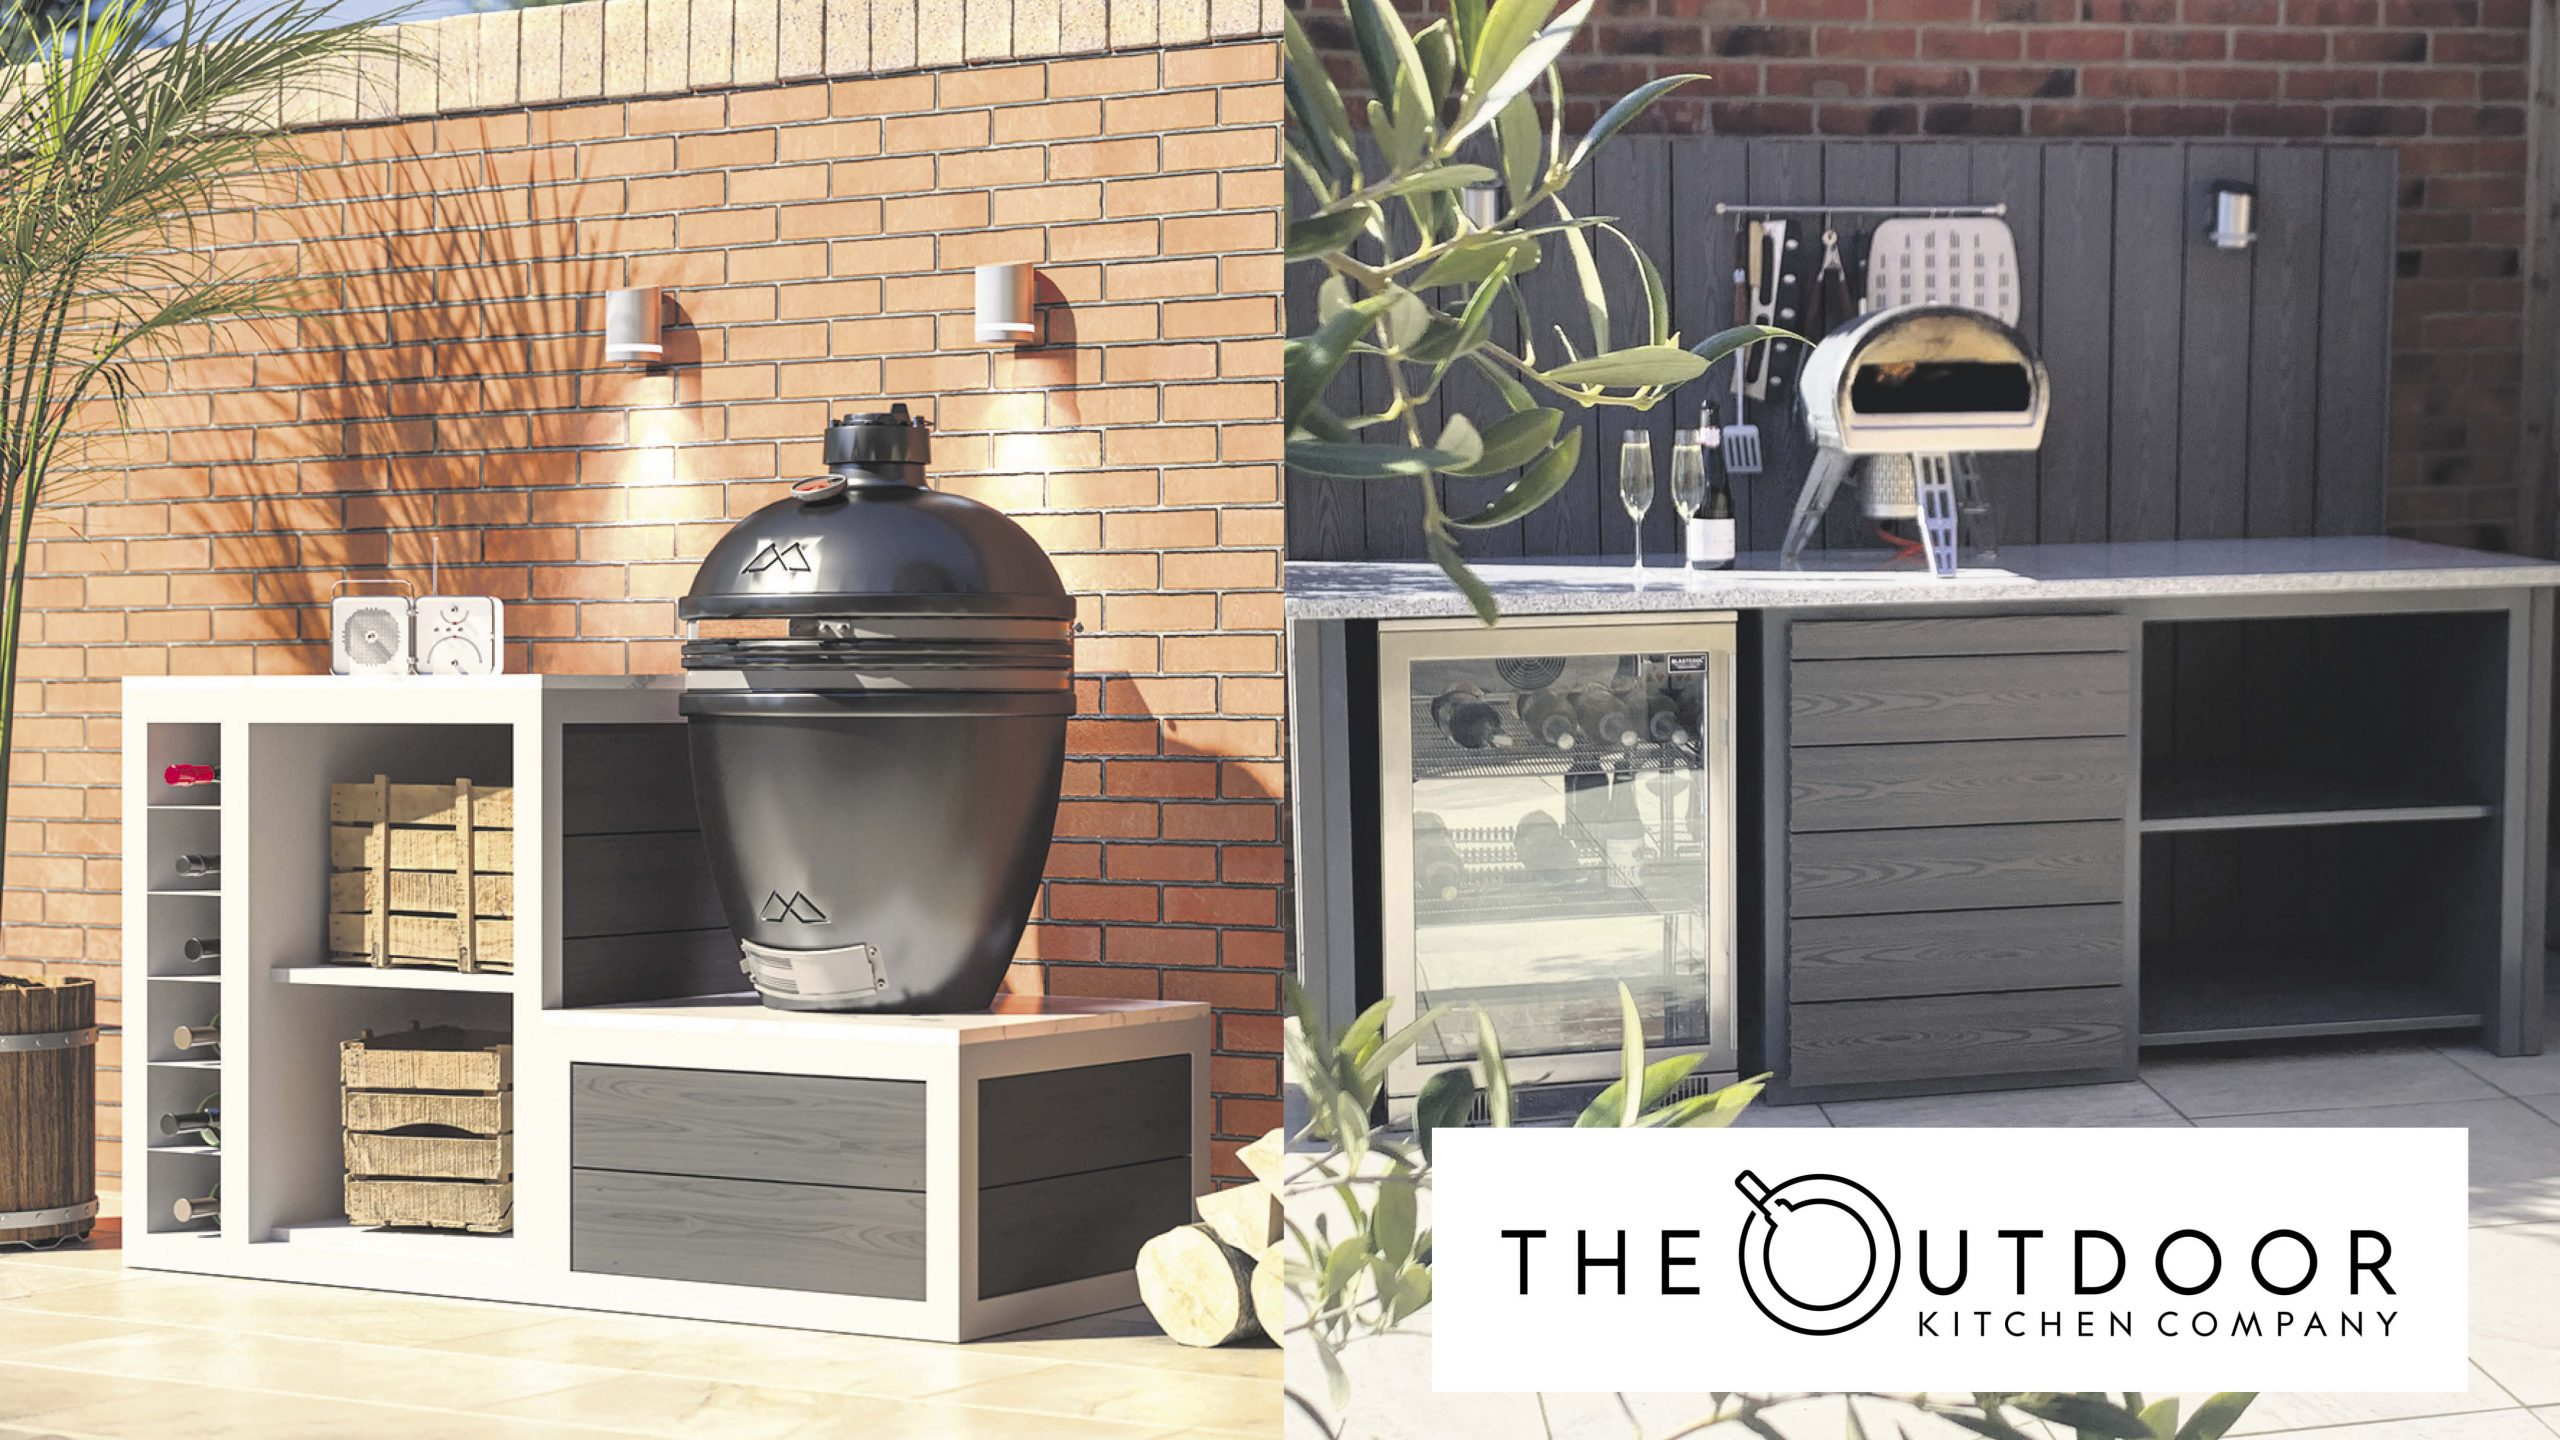 Win a stunning compact Kamado kitchen for your garden Worth £3,100!